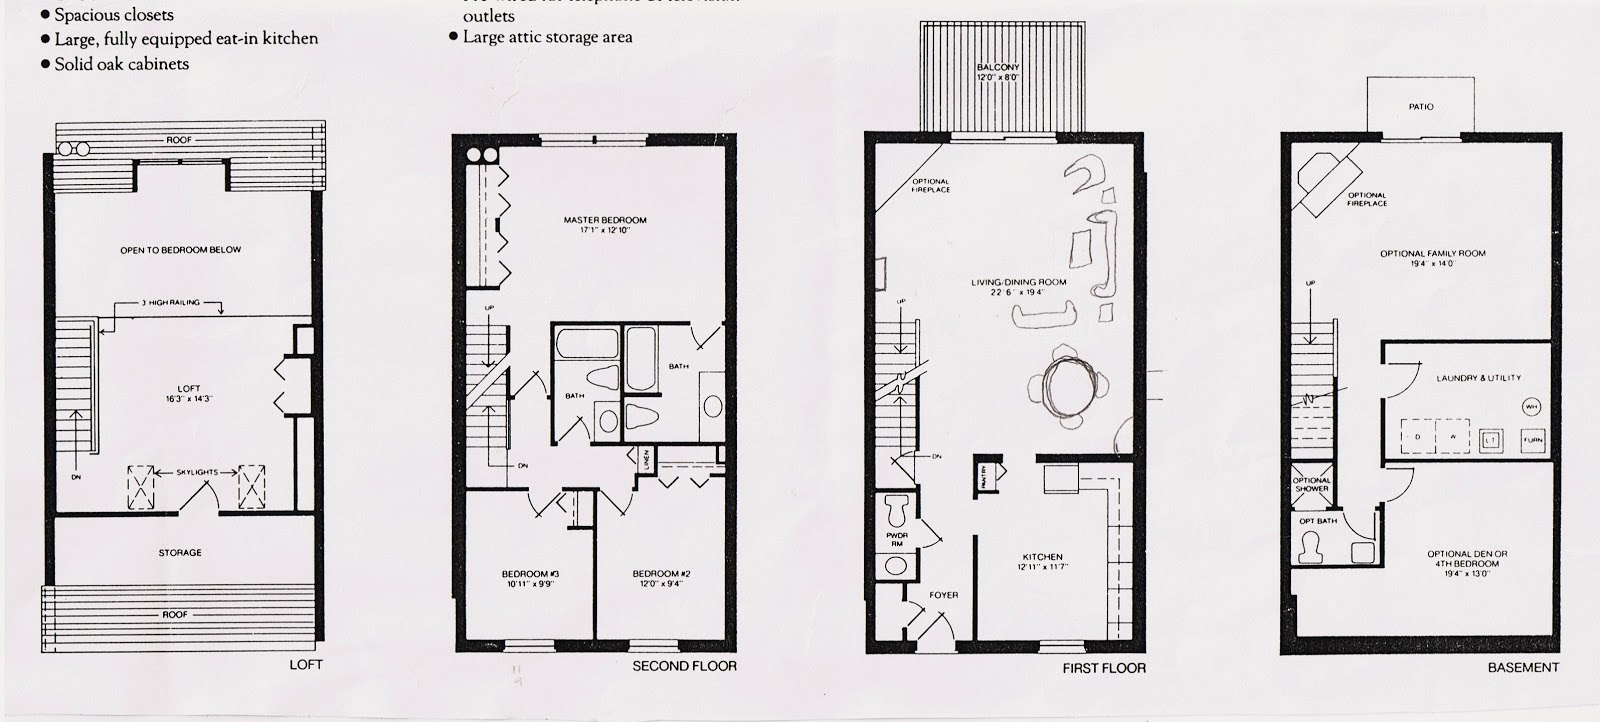 Bathroom floor plans for 7 x 10 home decorating for Bath floor plans